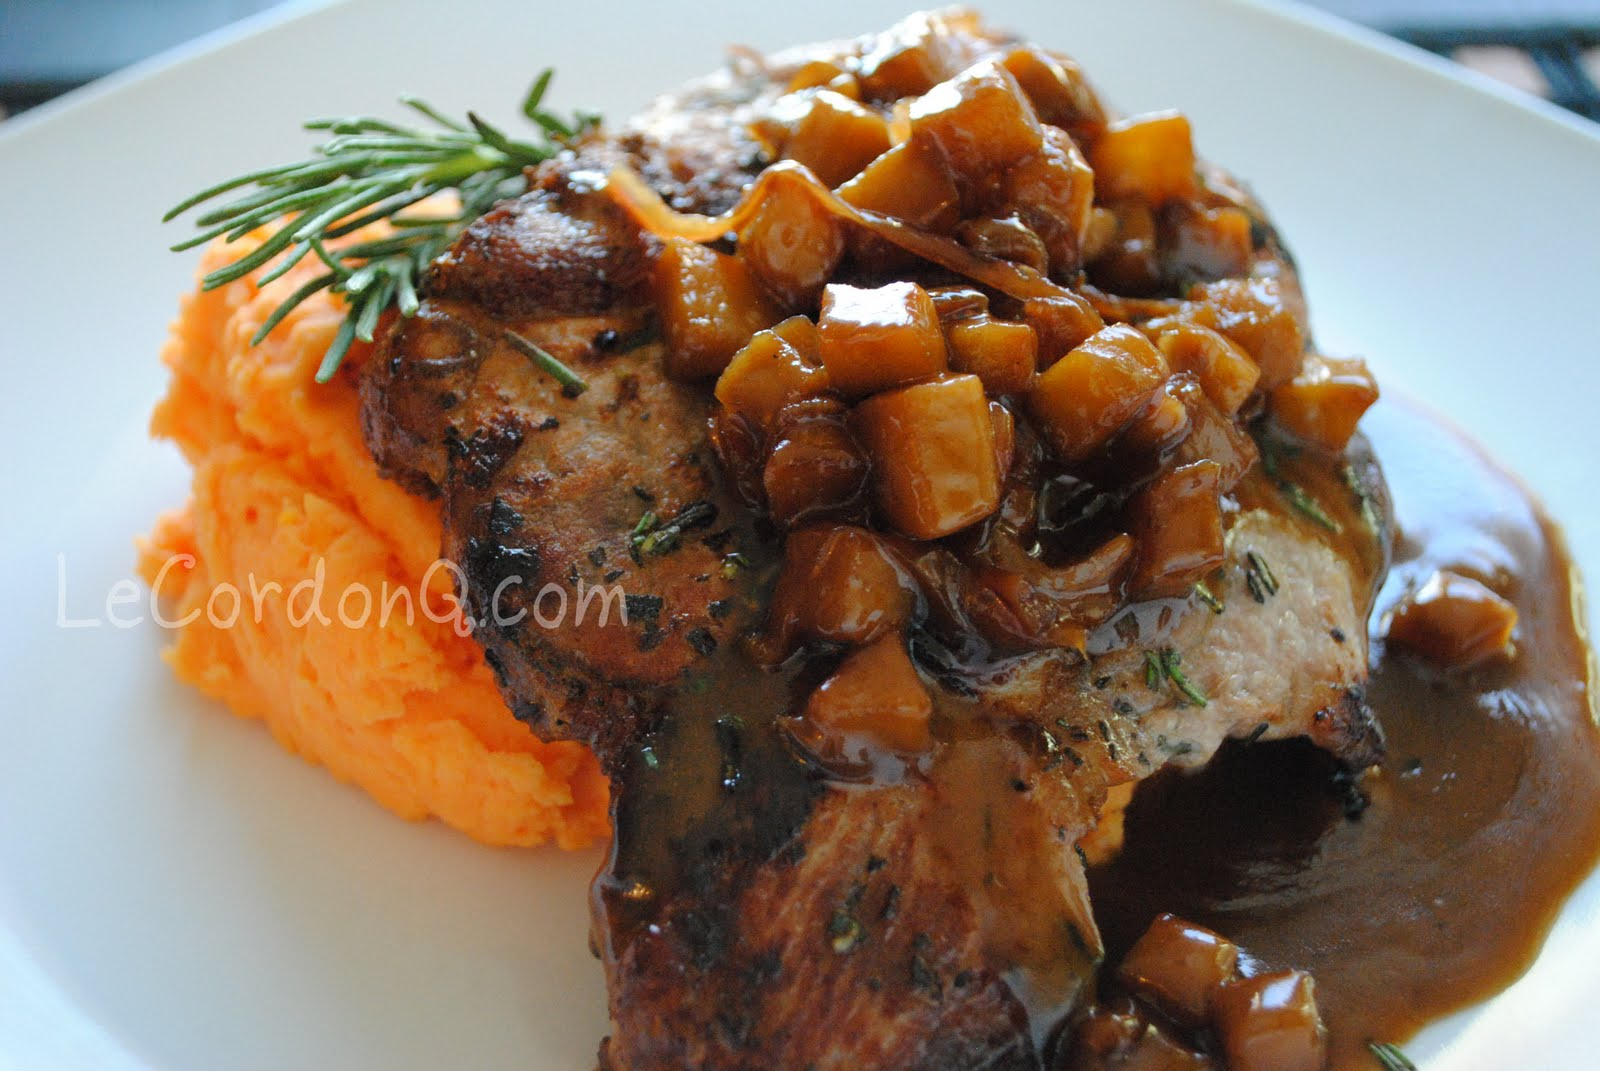 their pork chop au poivre 2 pcs marinated pork chop chicken au poivre ...